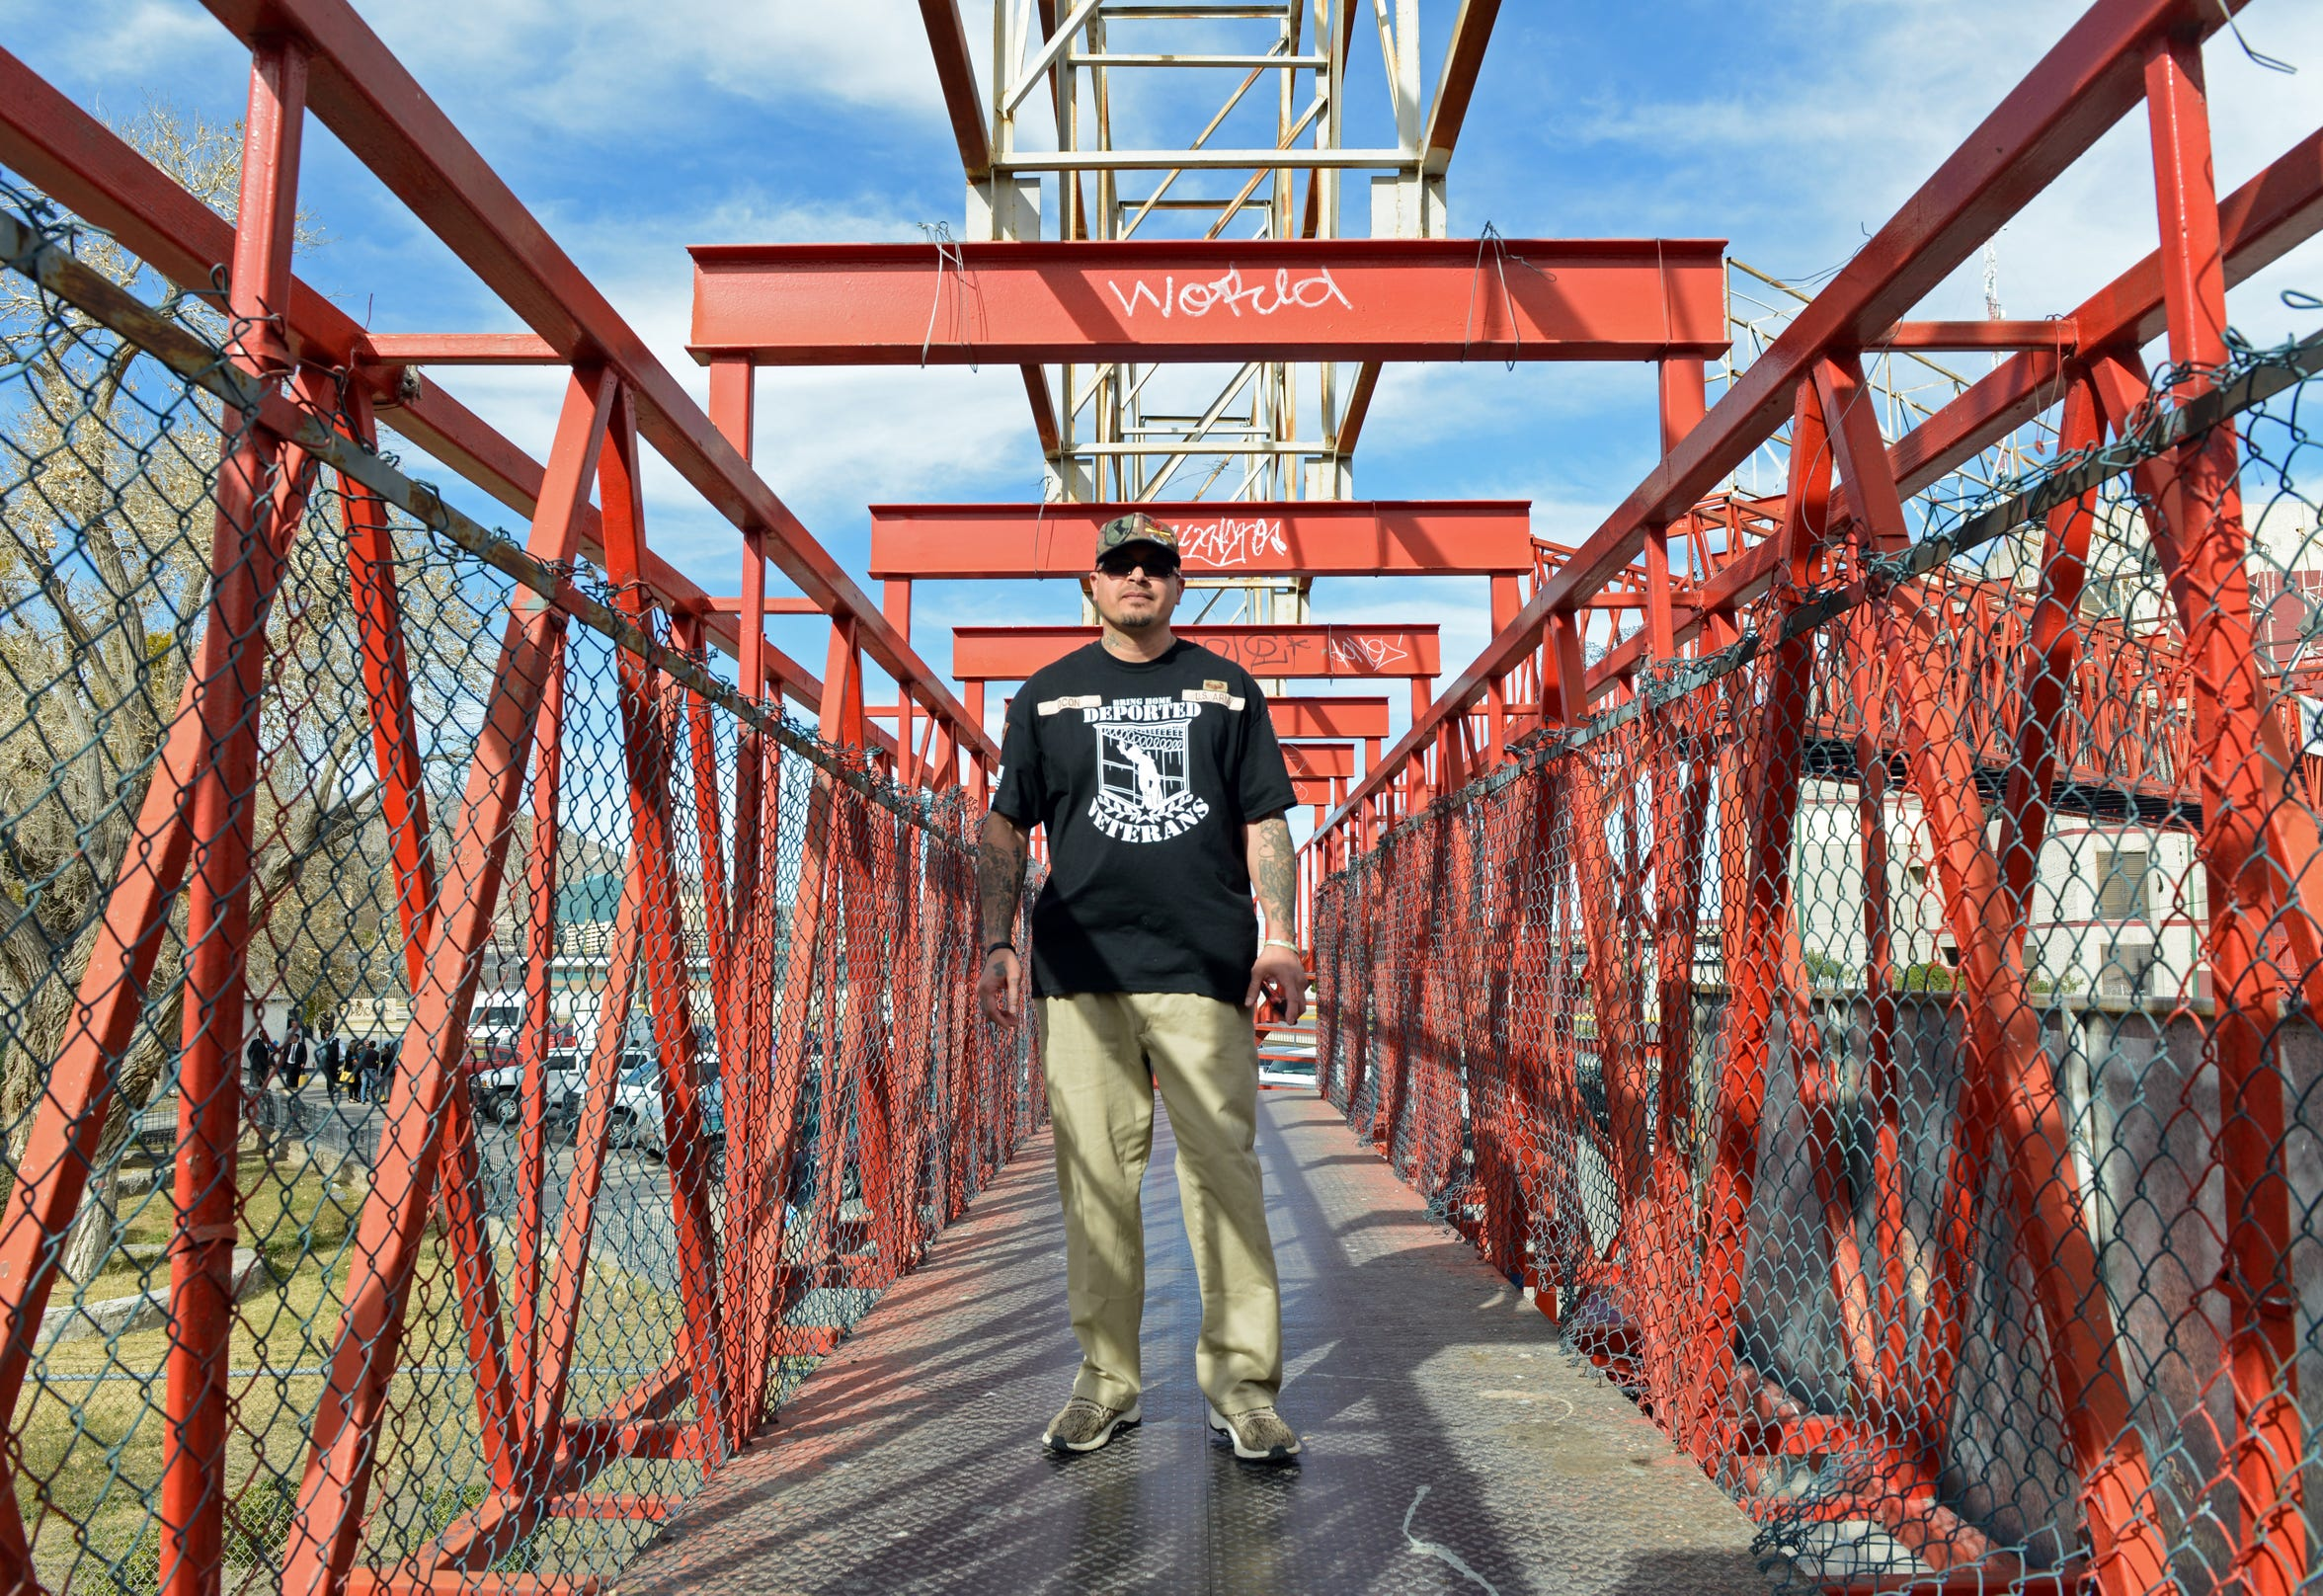 Ivan Ocon stands on a passenger bridge in Juárez, where he has lived since he was deported in 2016.